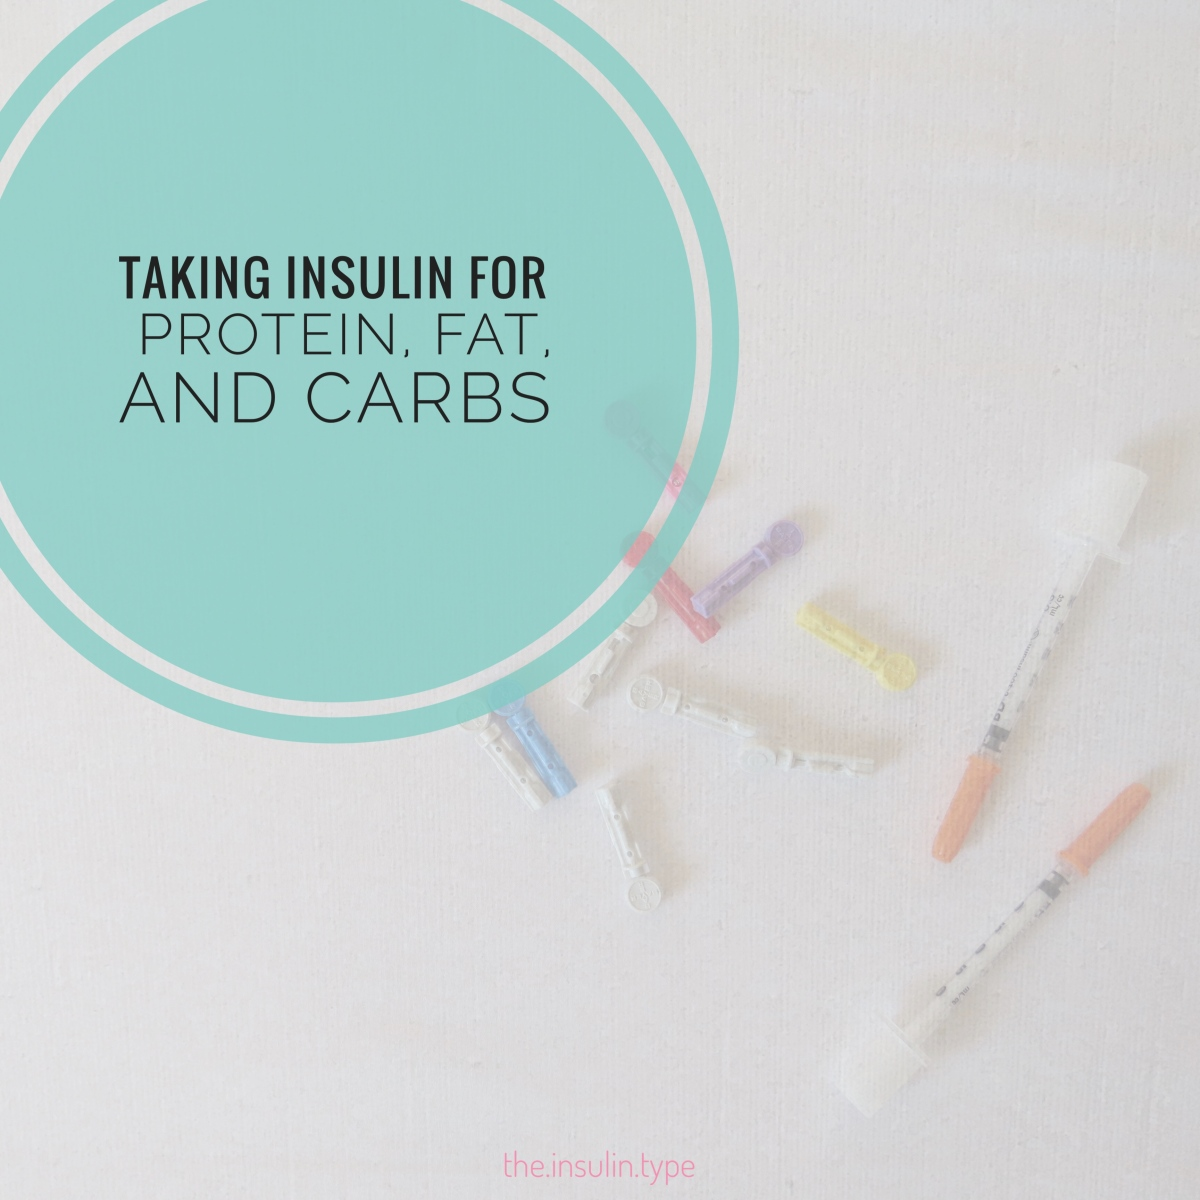 Taking Insulin for Protein, Fat, and Carbs